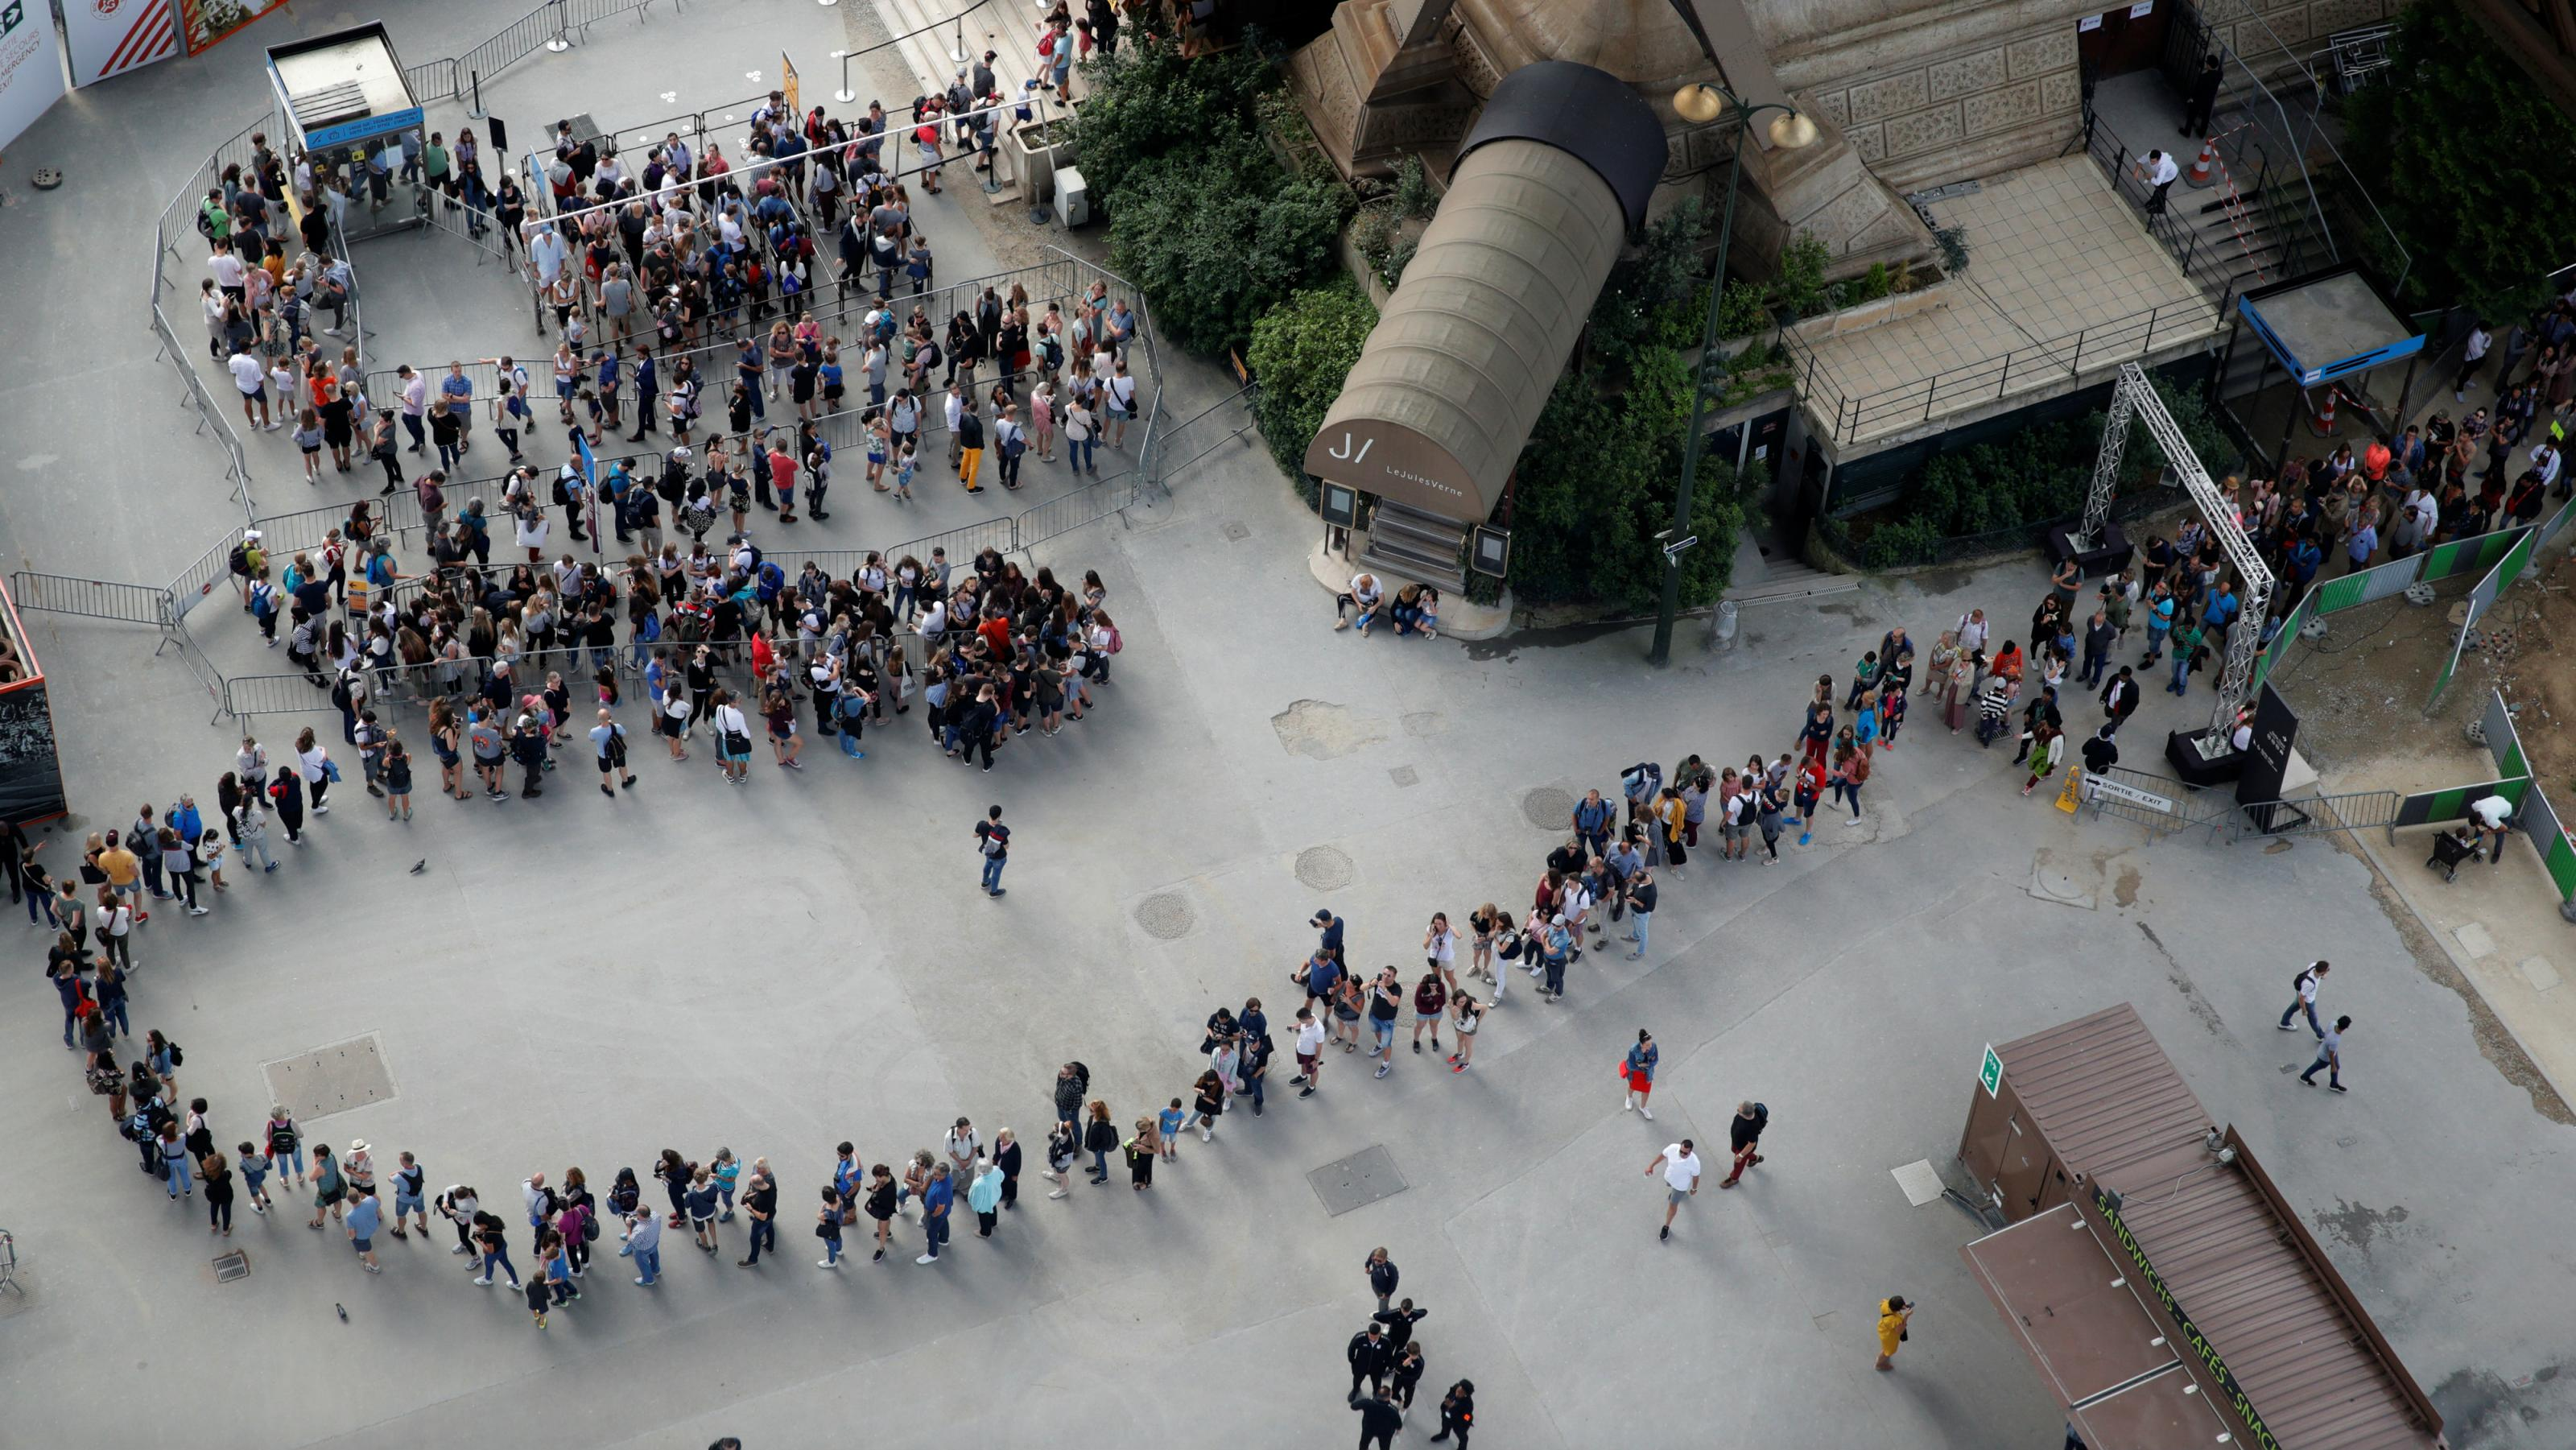 Eiffel-Tower-queue.jpg